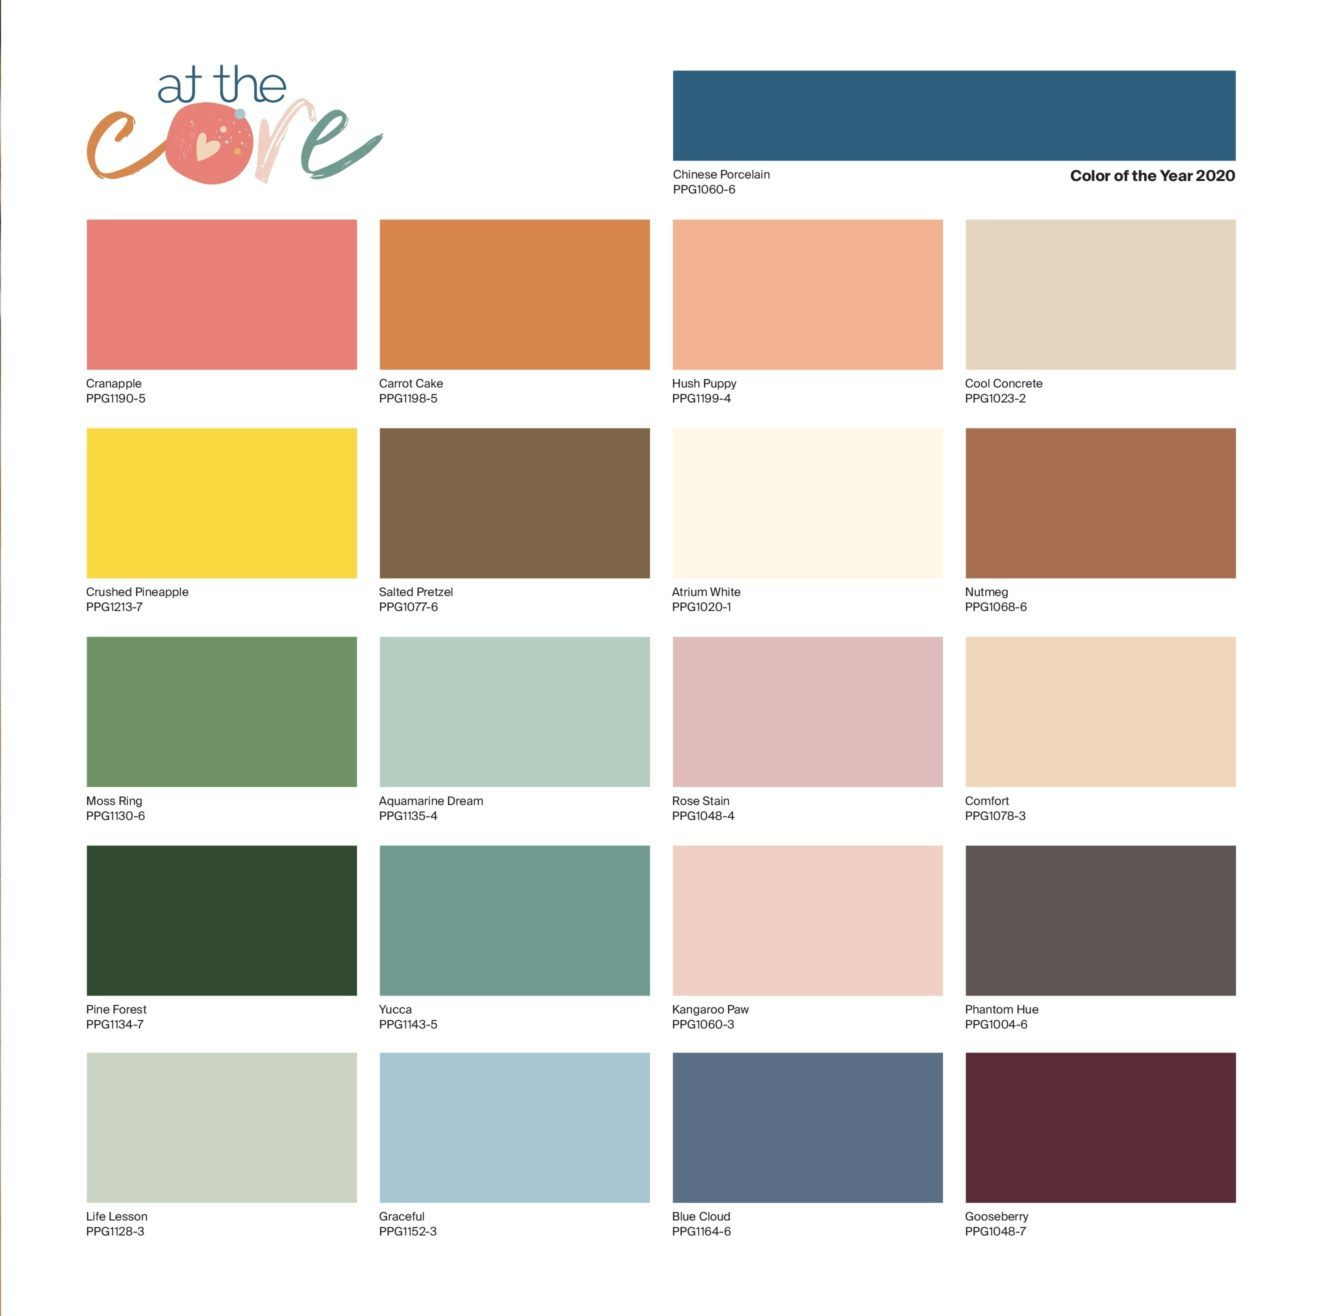 PPG color of the year 2020 - global color palette